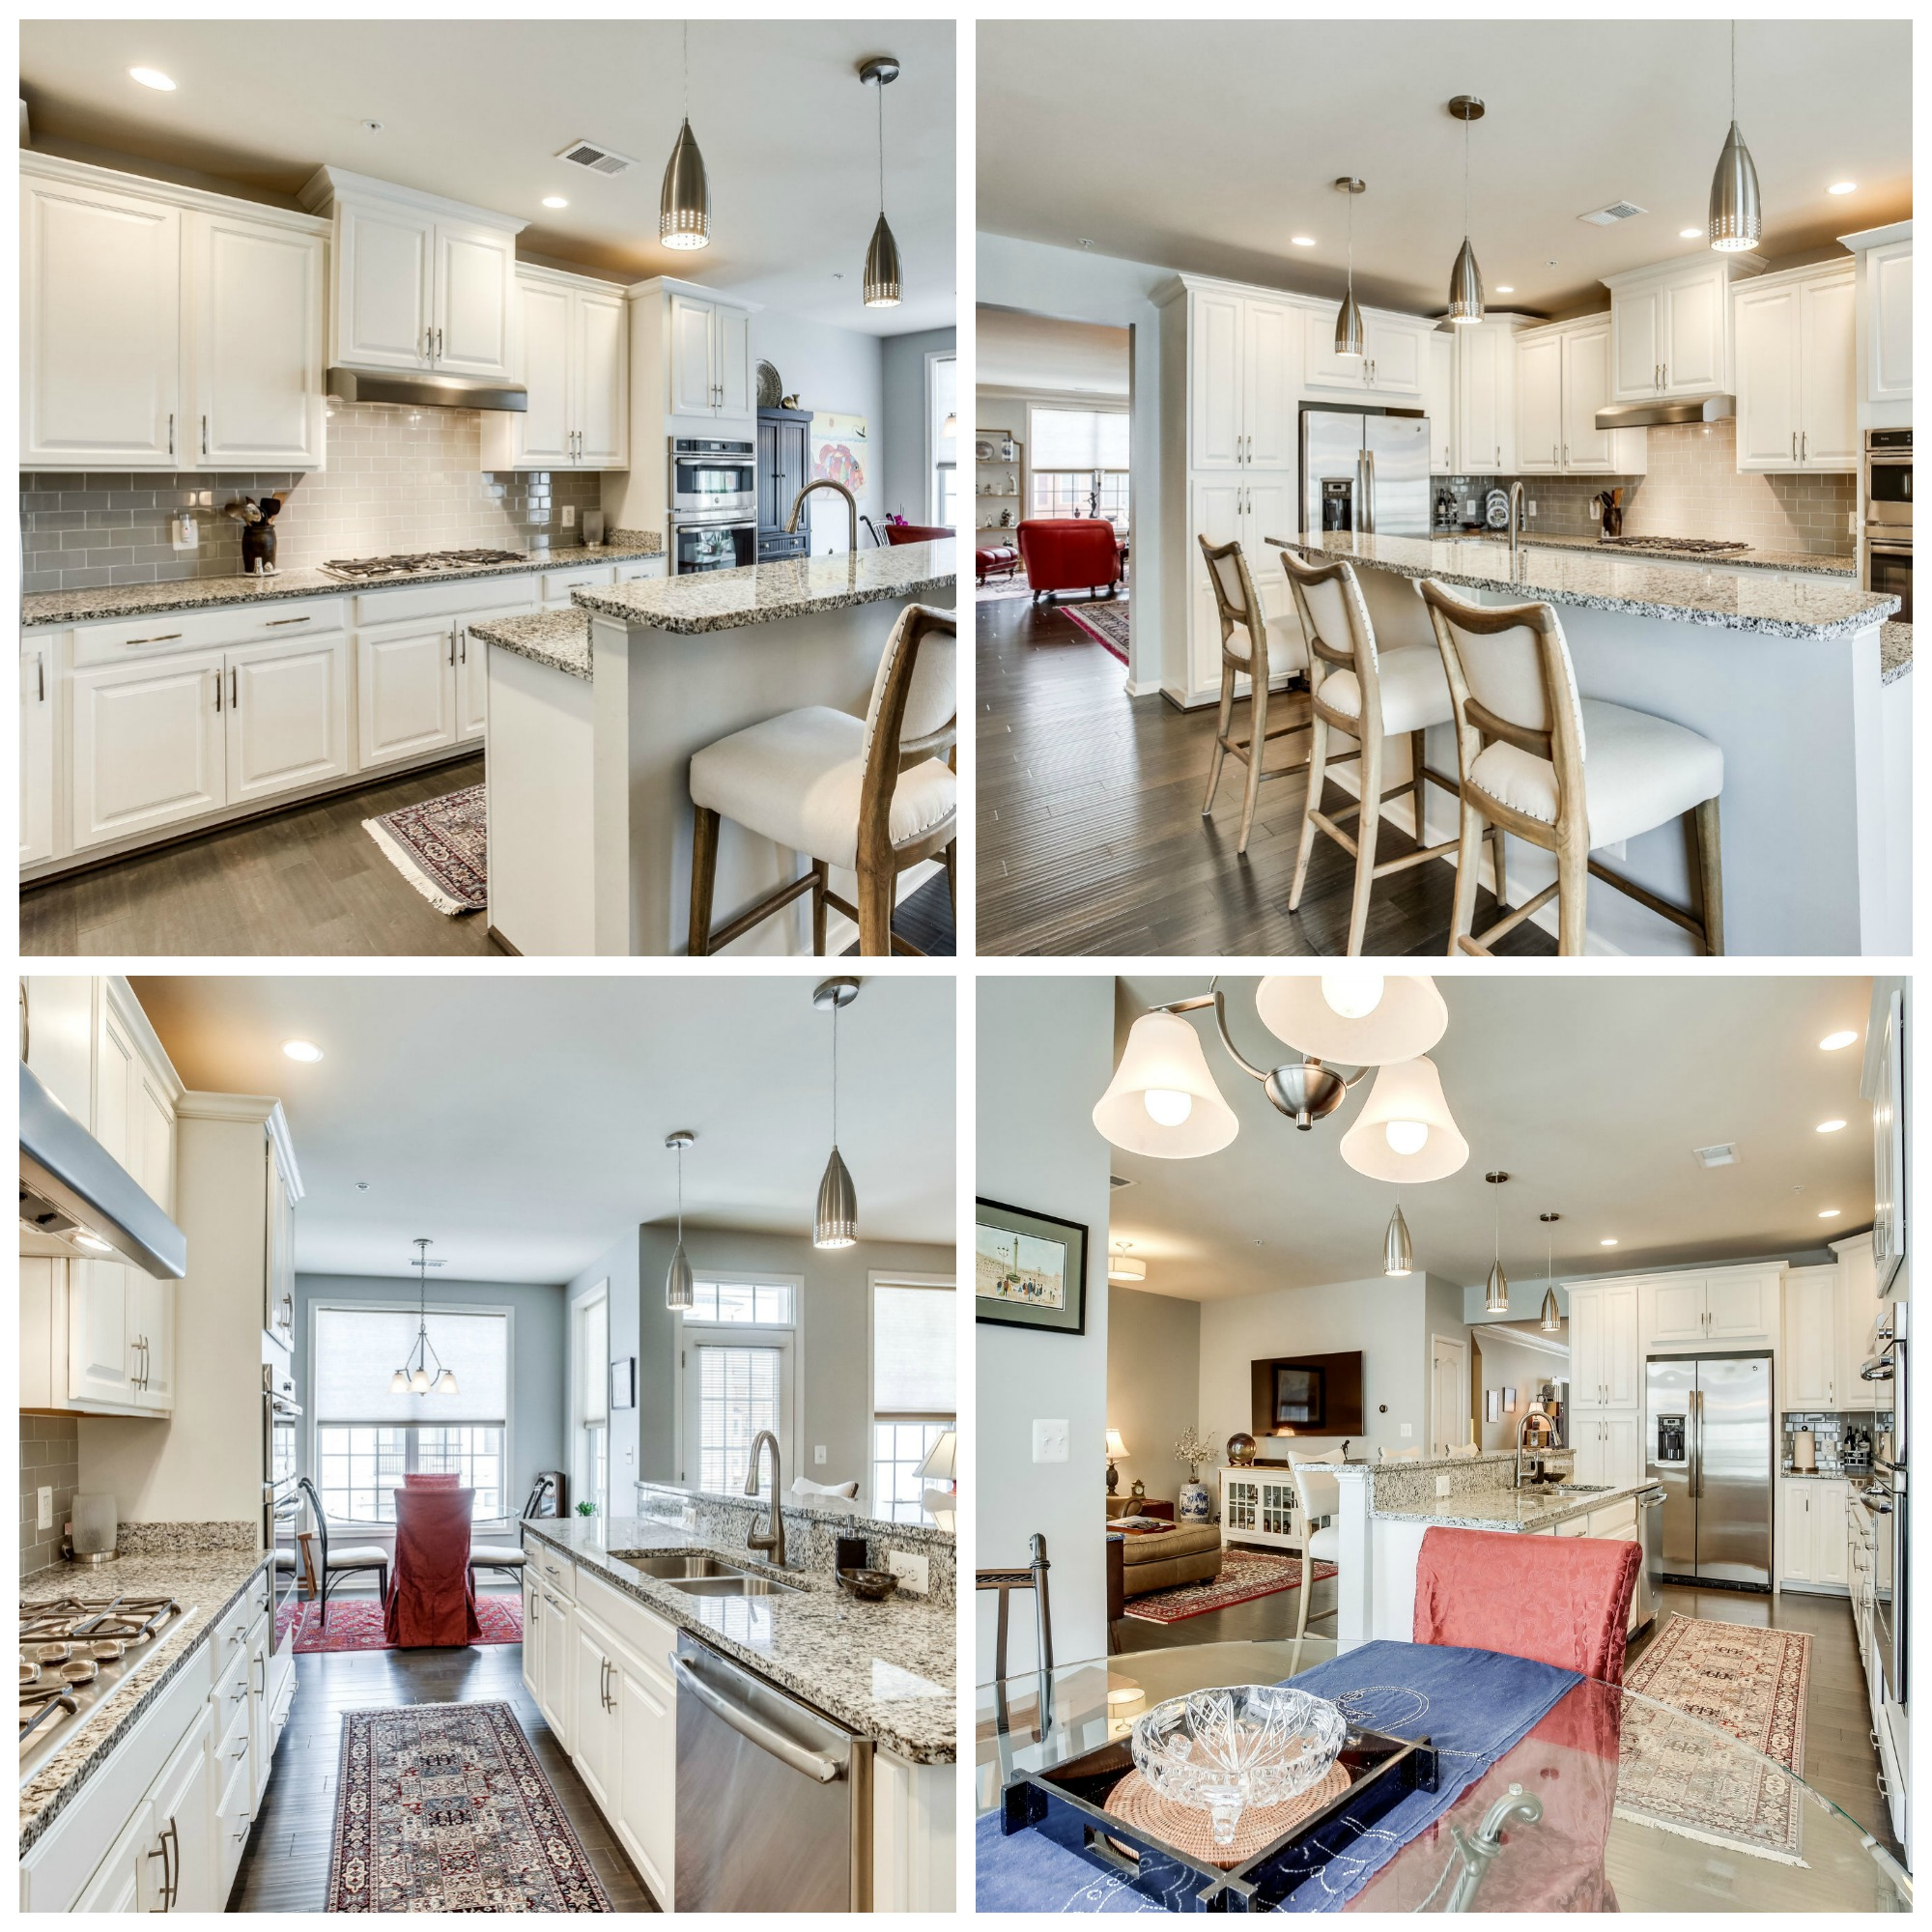 43209 Thoroughfare Gap Ter, Ashburn- Kitchen